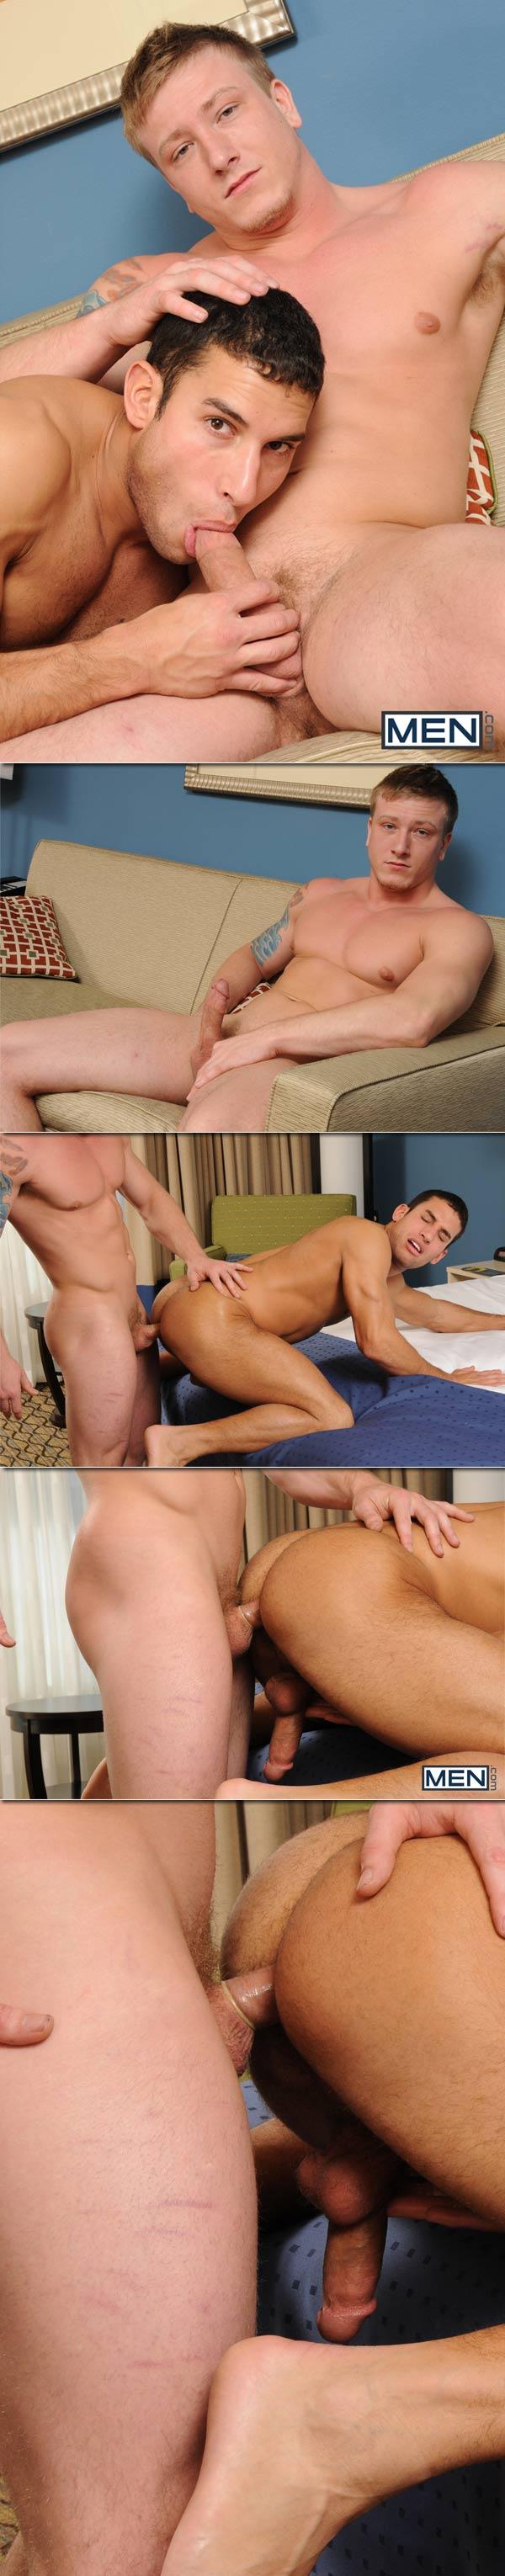 School Trip (Ricky Decker & Tom Faulk) at BigDicksAtSchool